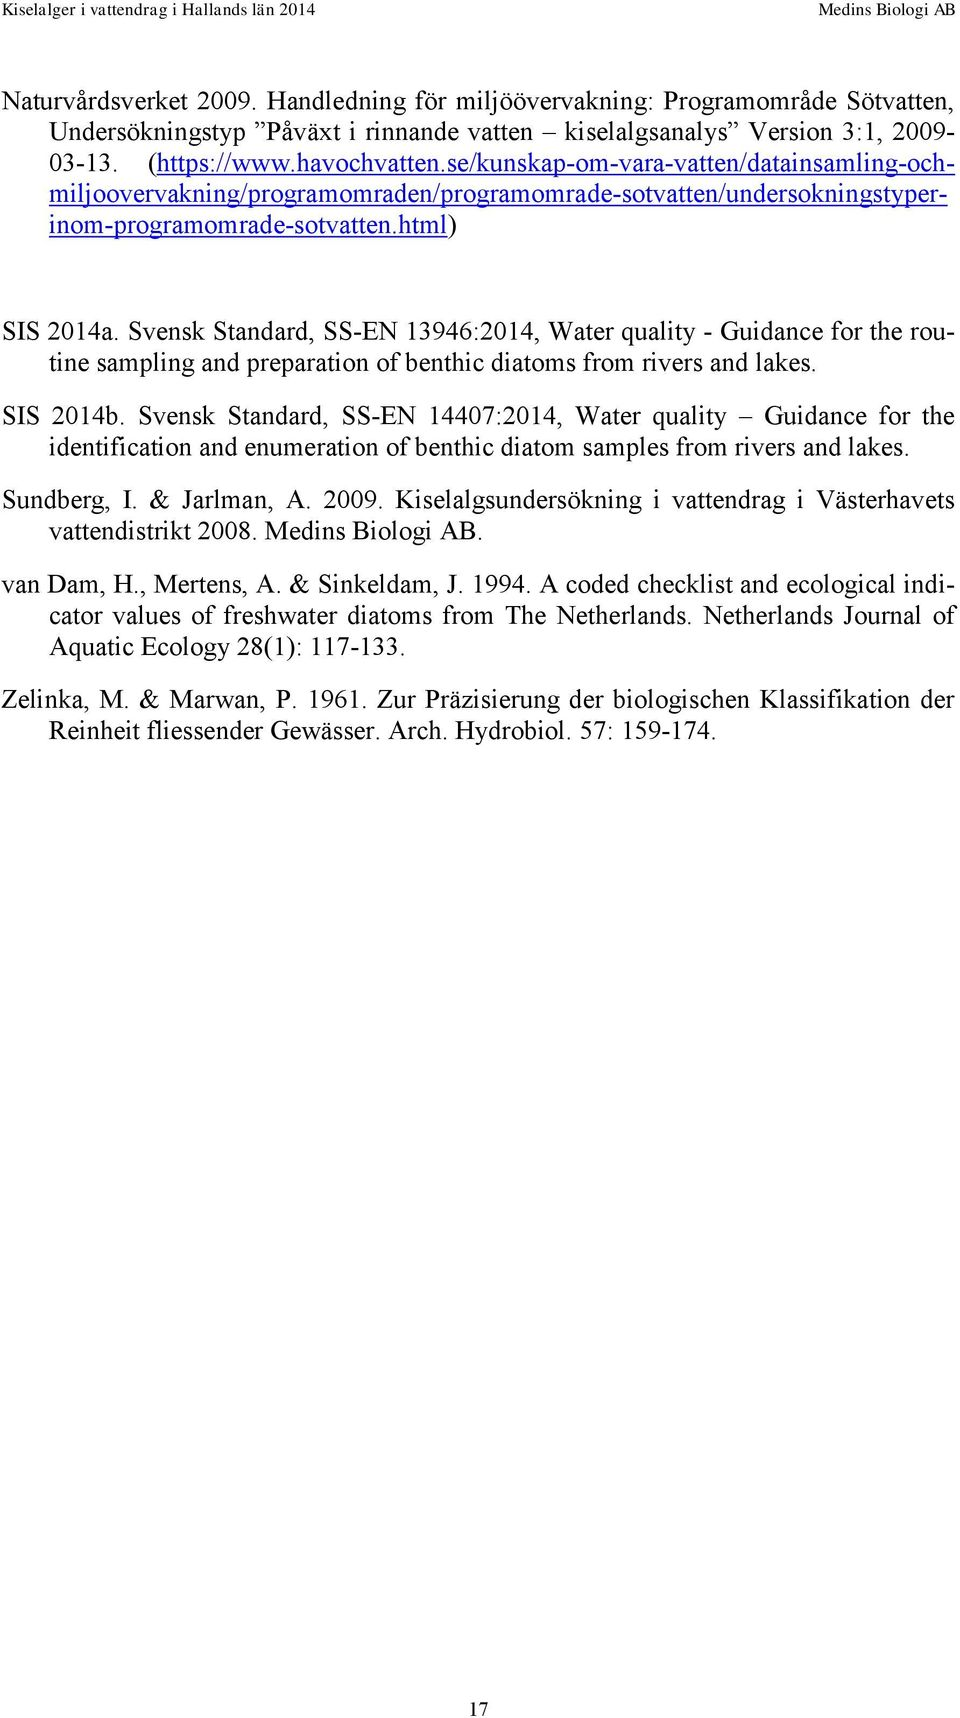 Svensk Standard, SS-EN 13946:2014, Water quality - Guidance for the routine sampling and preparation of benthic diatoms from rivers and lakes. SIS 2014b.